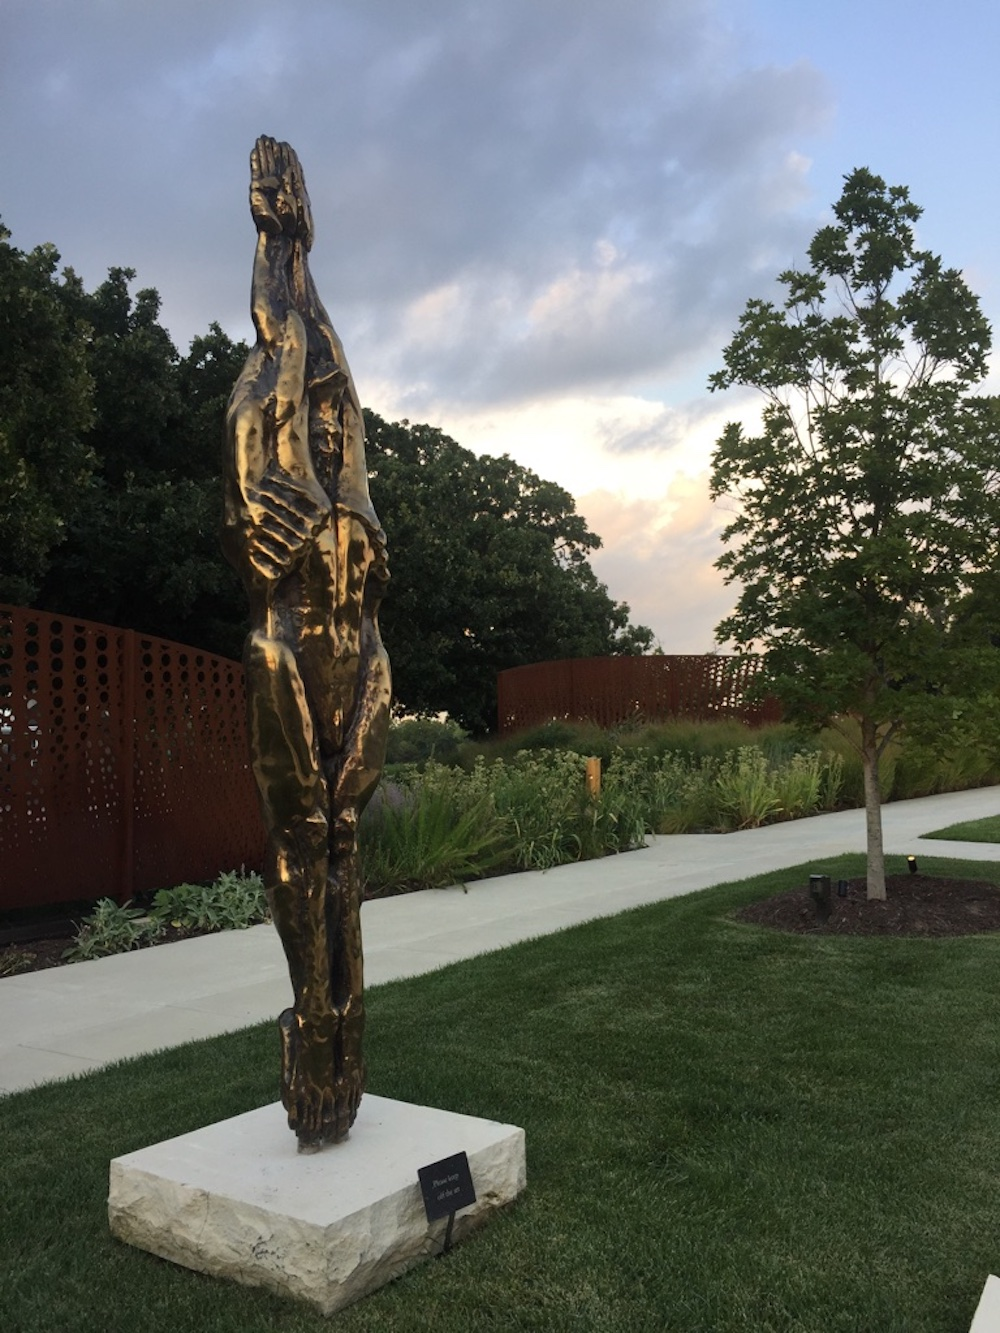 Metallic sculpture of an elongated torso outside of the Wichita Art Museum in Wichita, Kansas